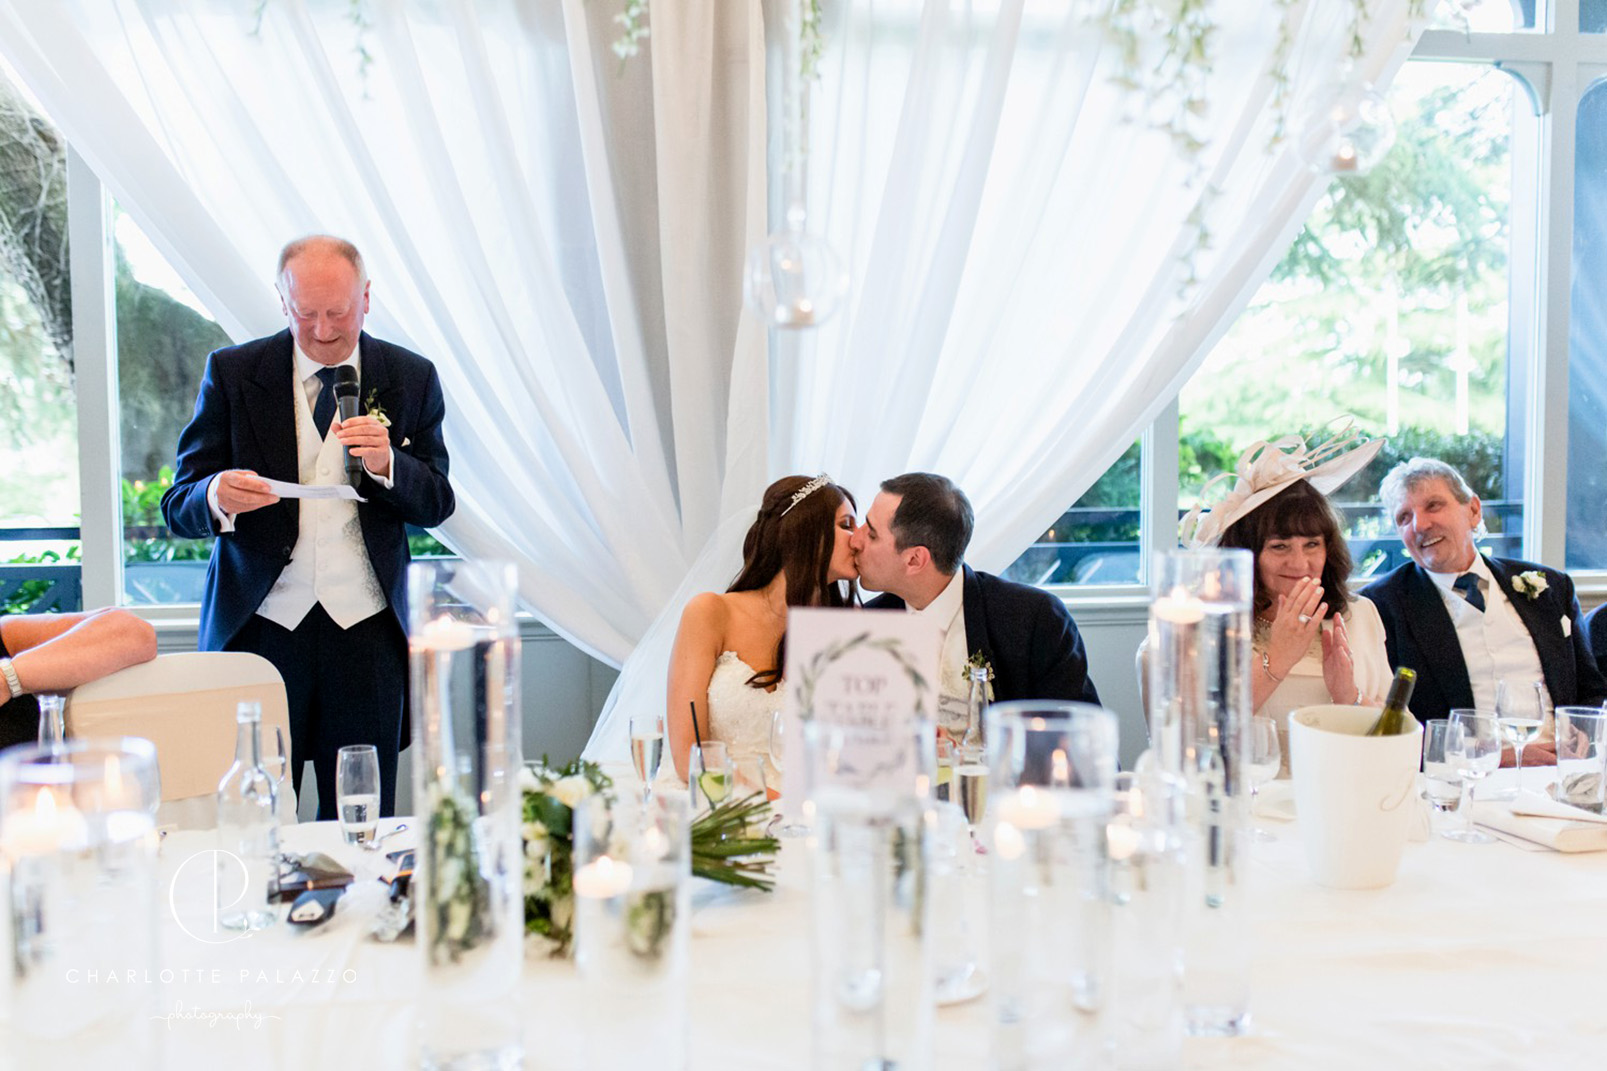 Fine_art_wedding_Photography_Cheshire_Wedding_Venues_The_Mere_Resort_0039.jpg